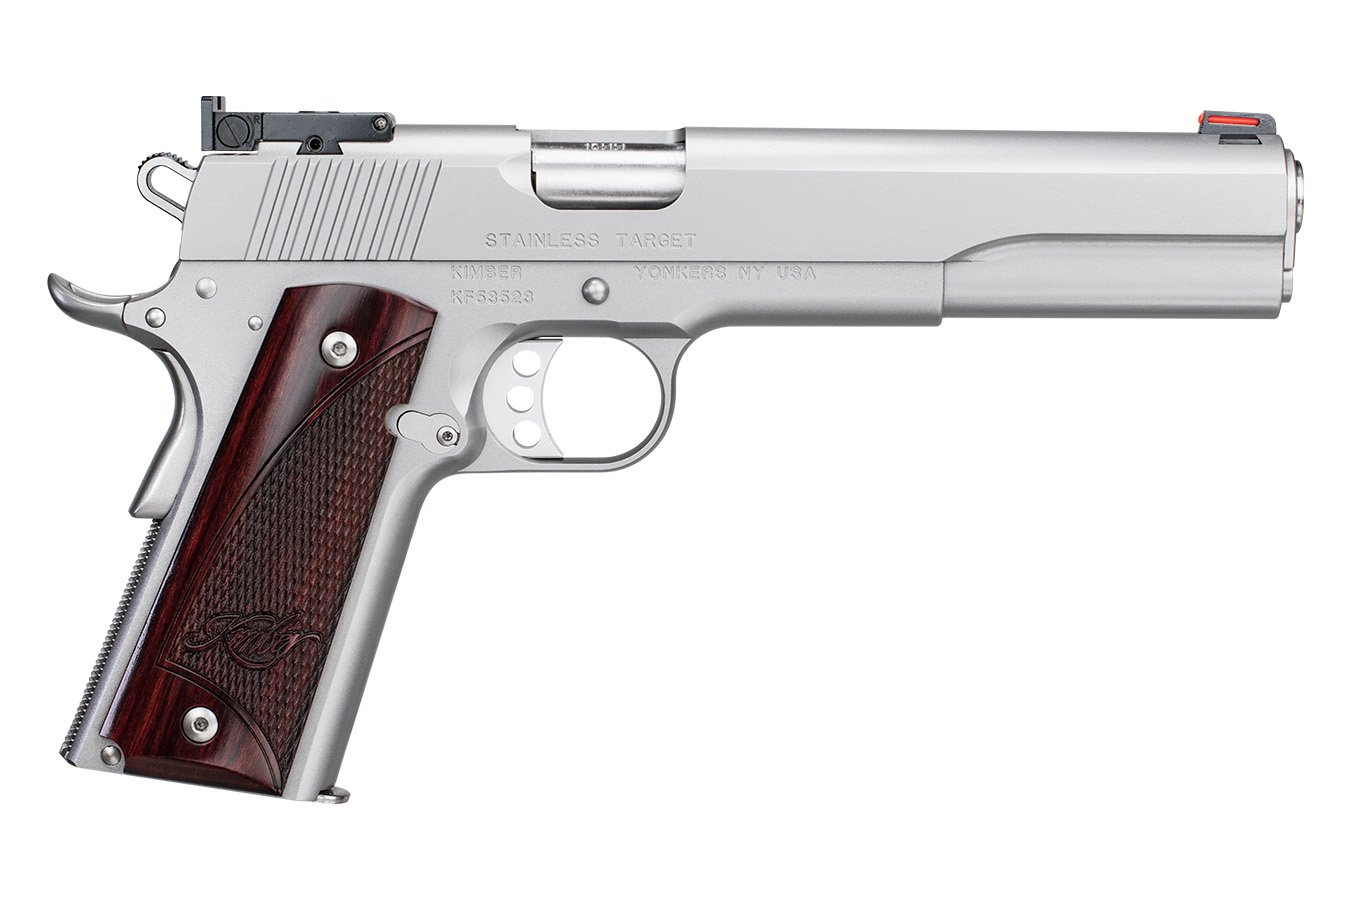 Kimber Stainless Target (LS) 10mm Pistol - $849 97 ($12 99 Flat S/H on  Firearms)